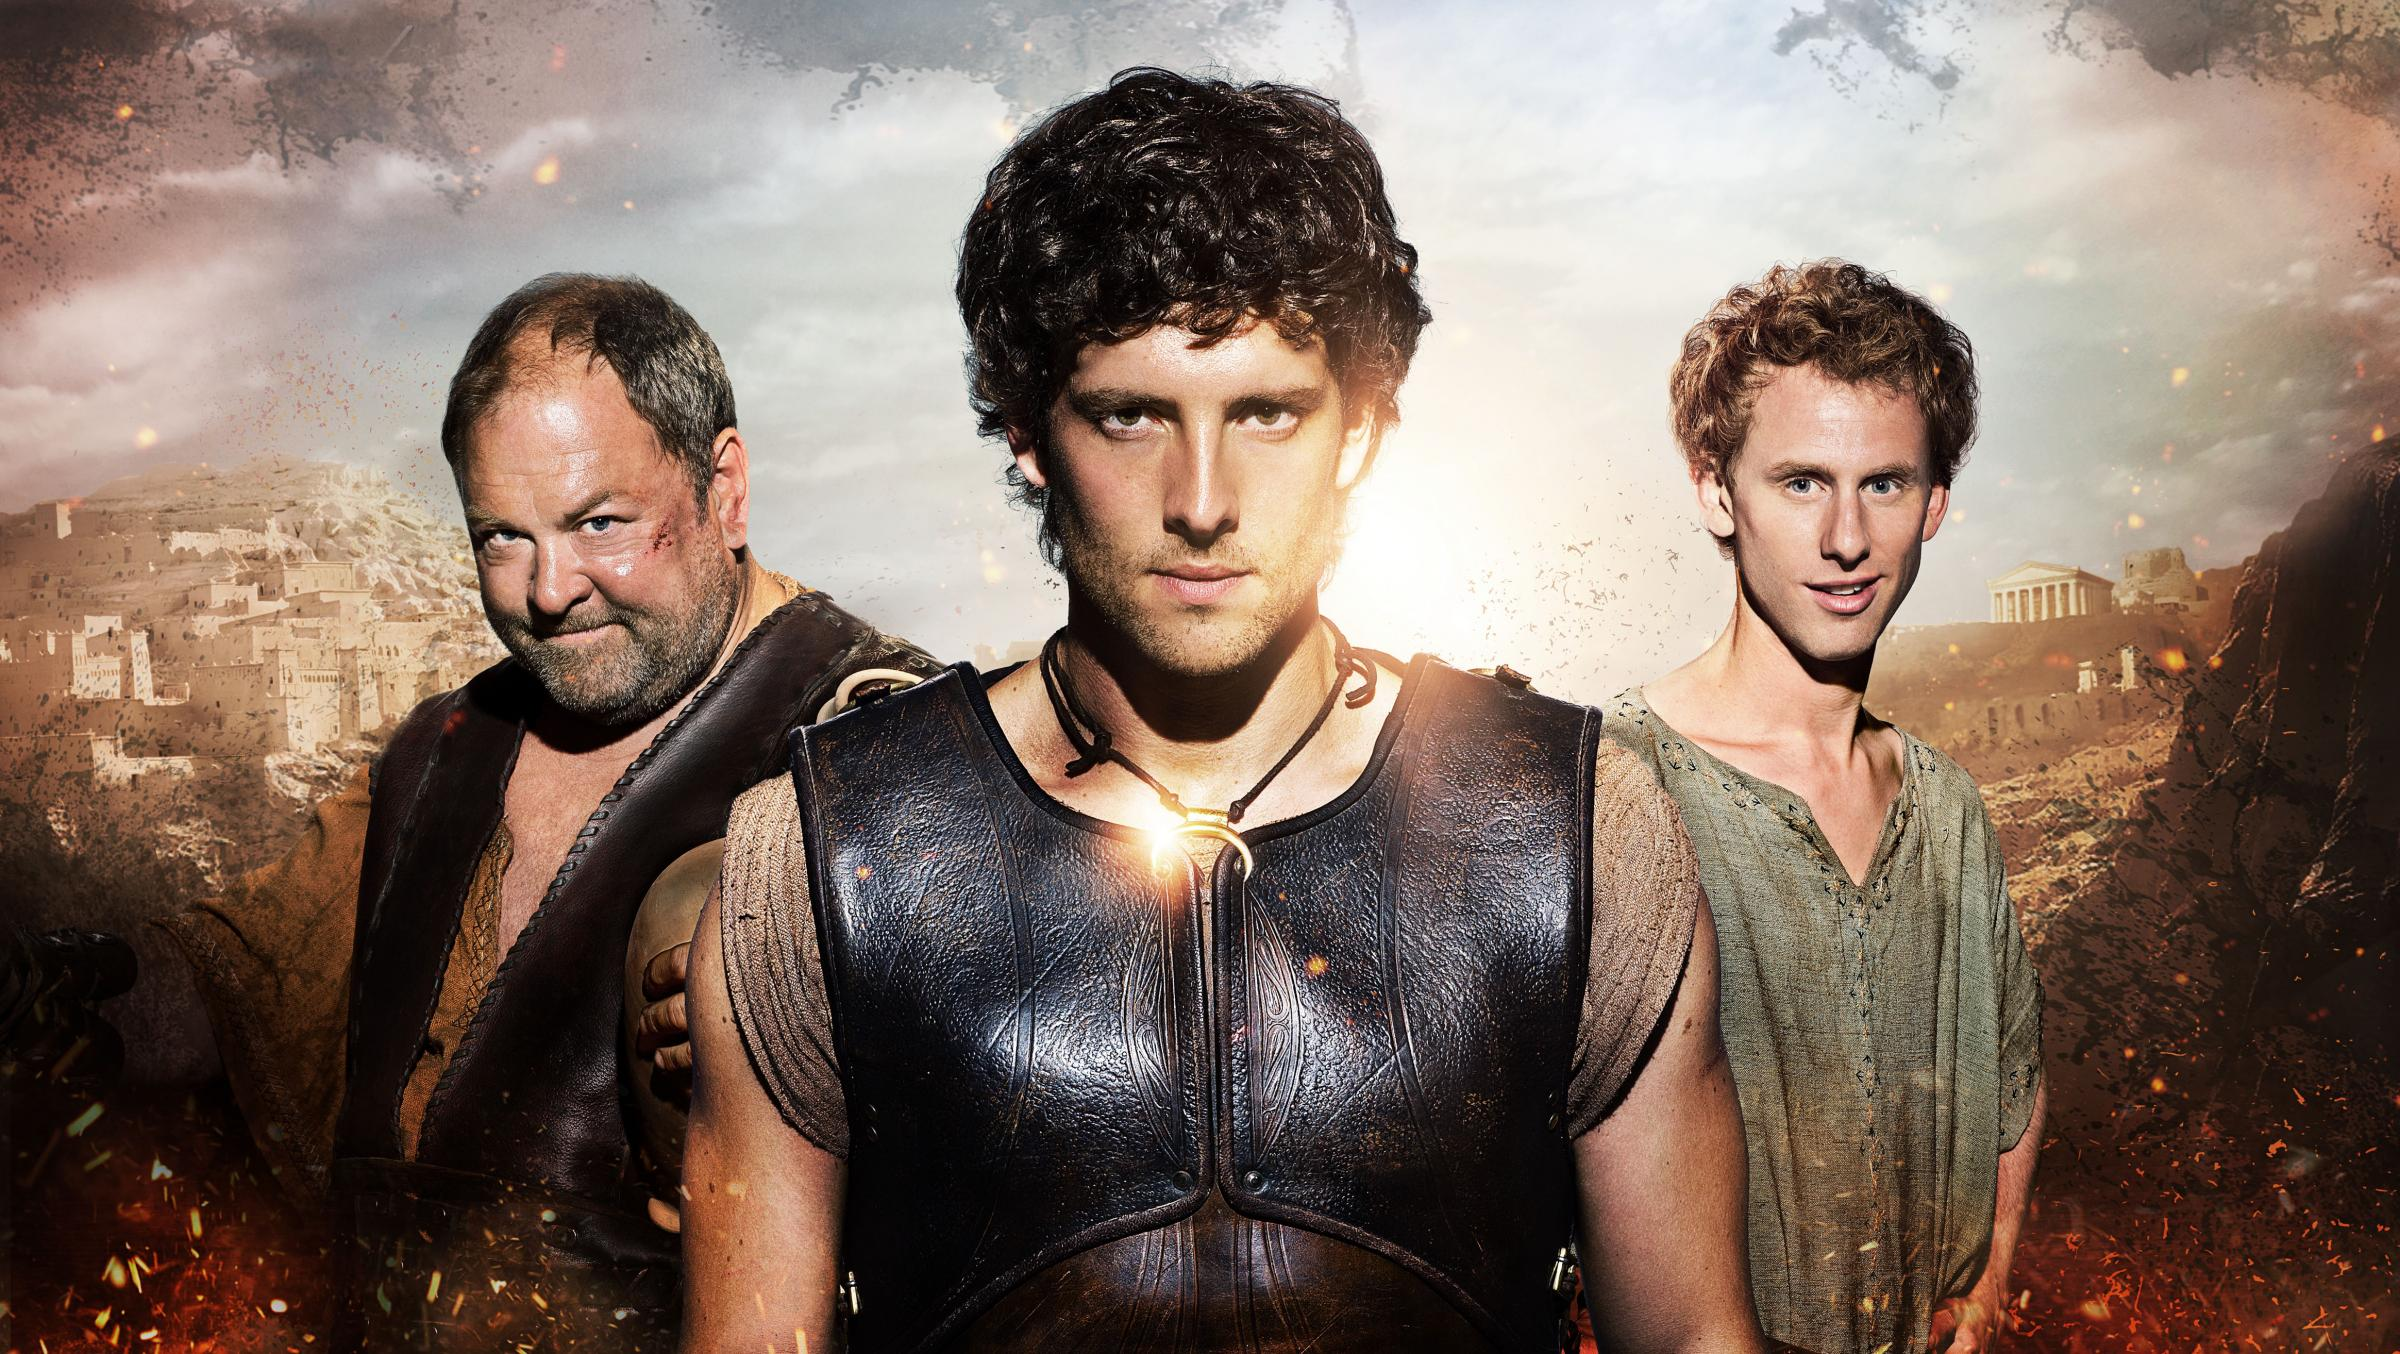 Hollywood actor Mark Addy (left) with his co-stars in Atlantis. The ancestors of the York actor are being commemorated wit